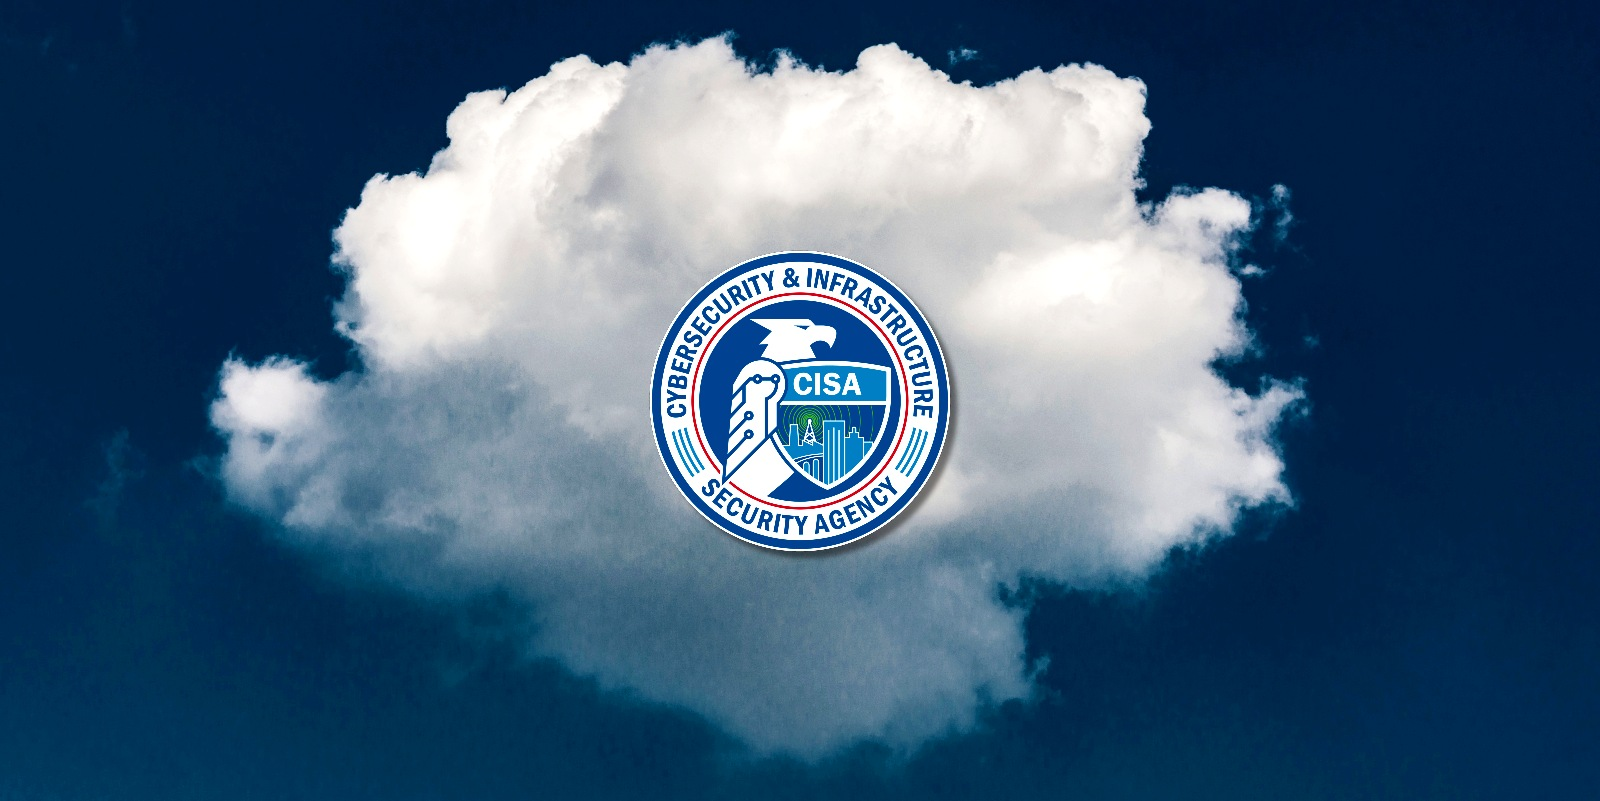 CISA: Hackers bypassed MFA to access cloud service accounts